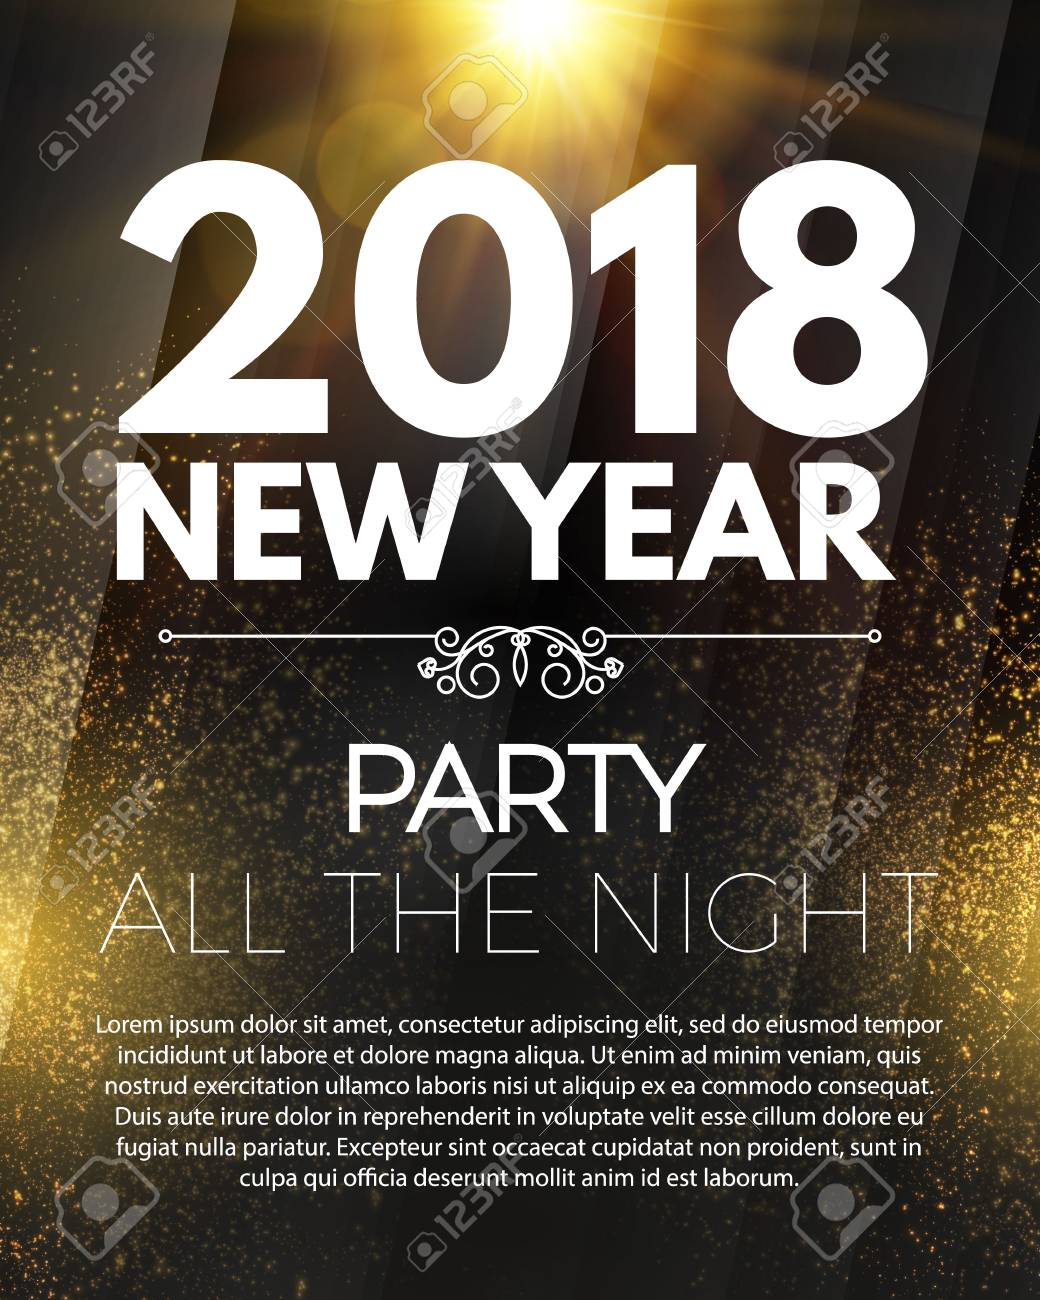 happy new 2018 year party poster template with light effects and place for text vector